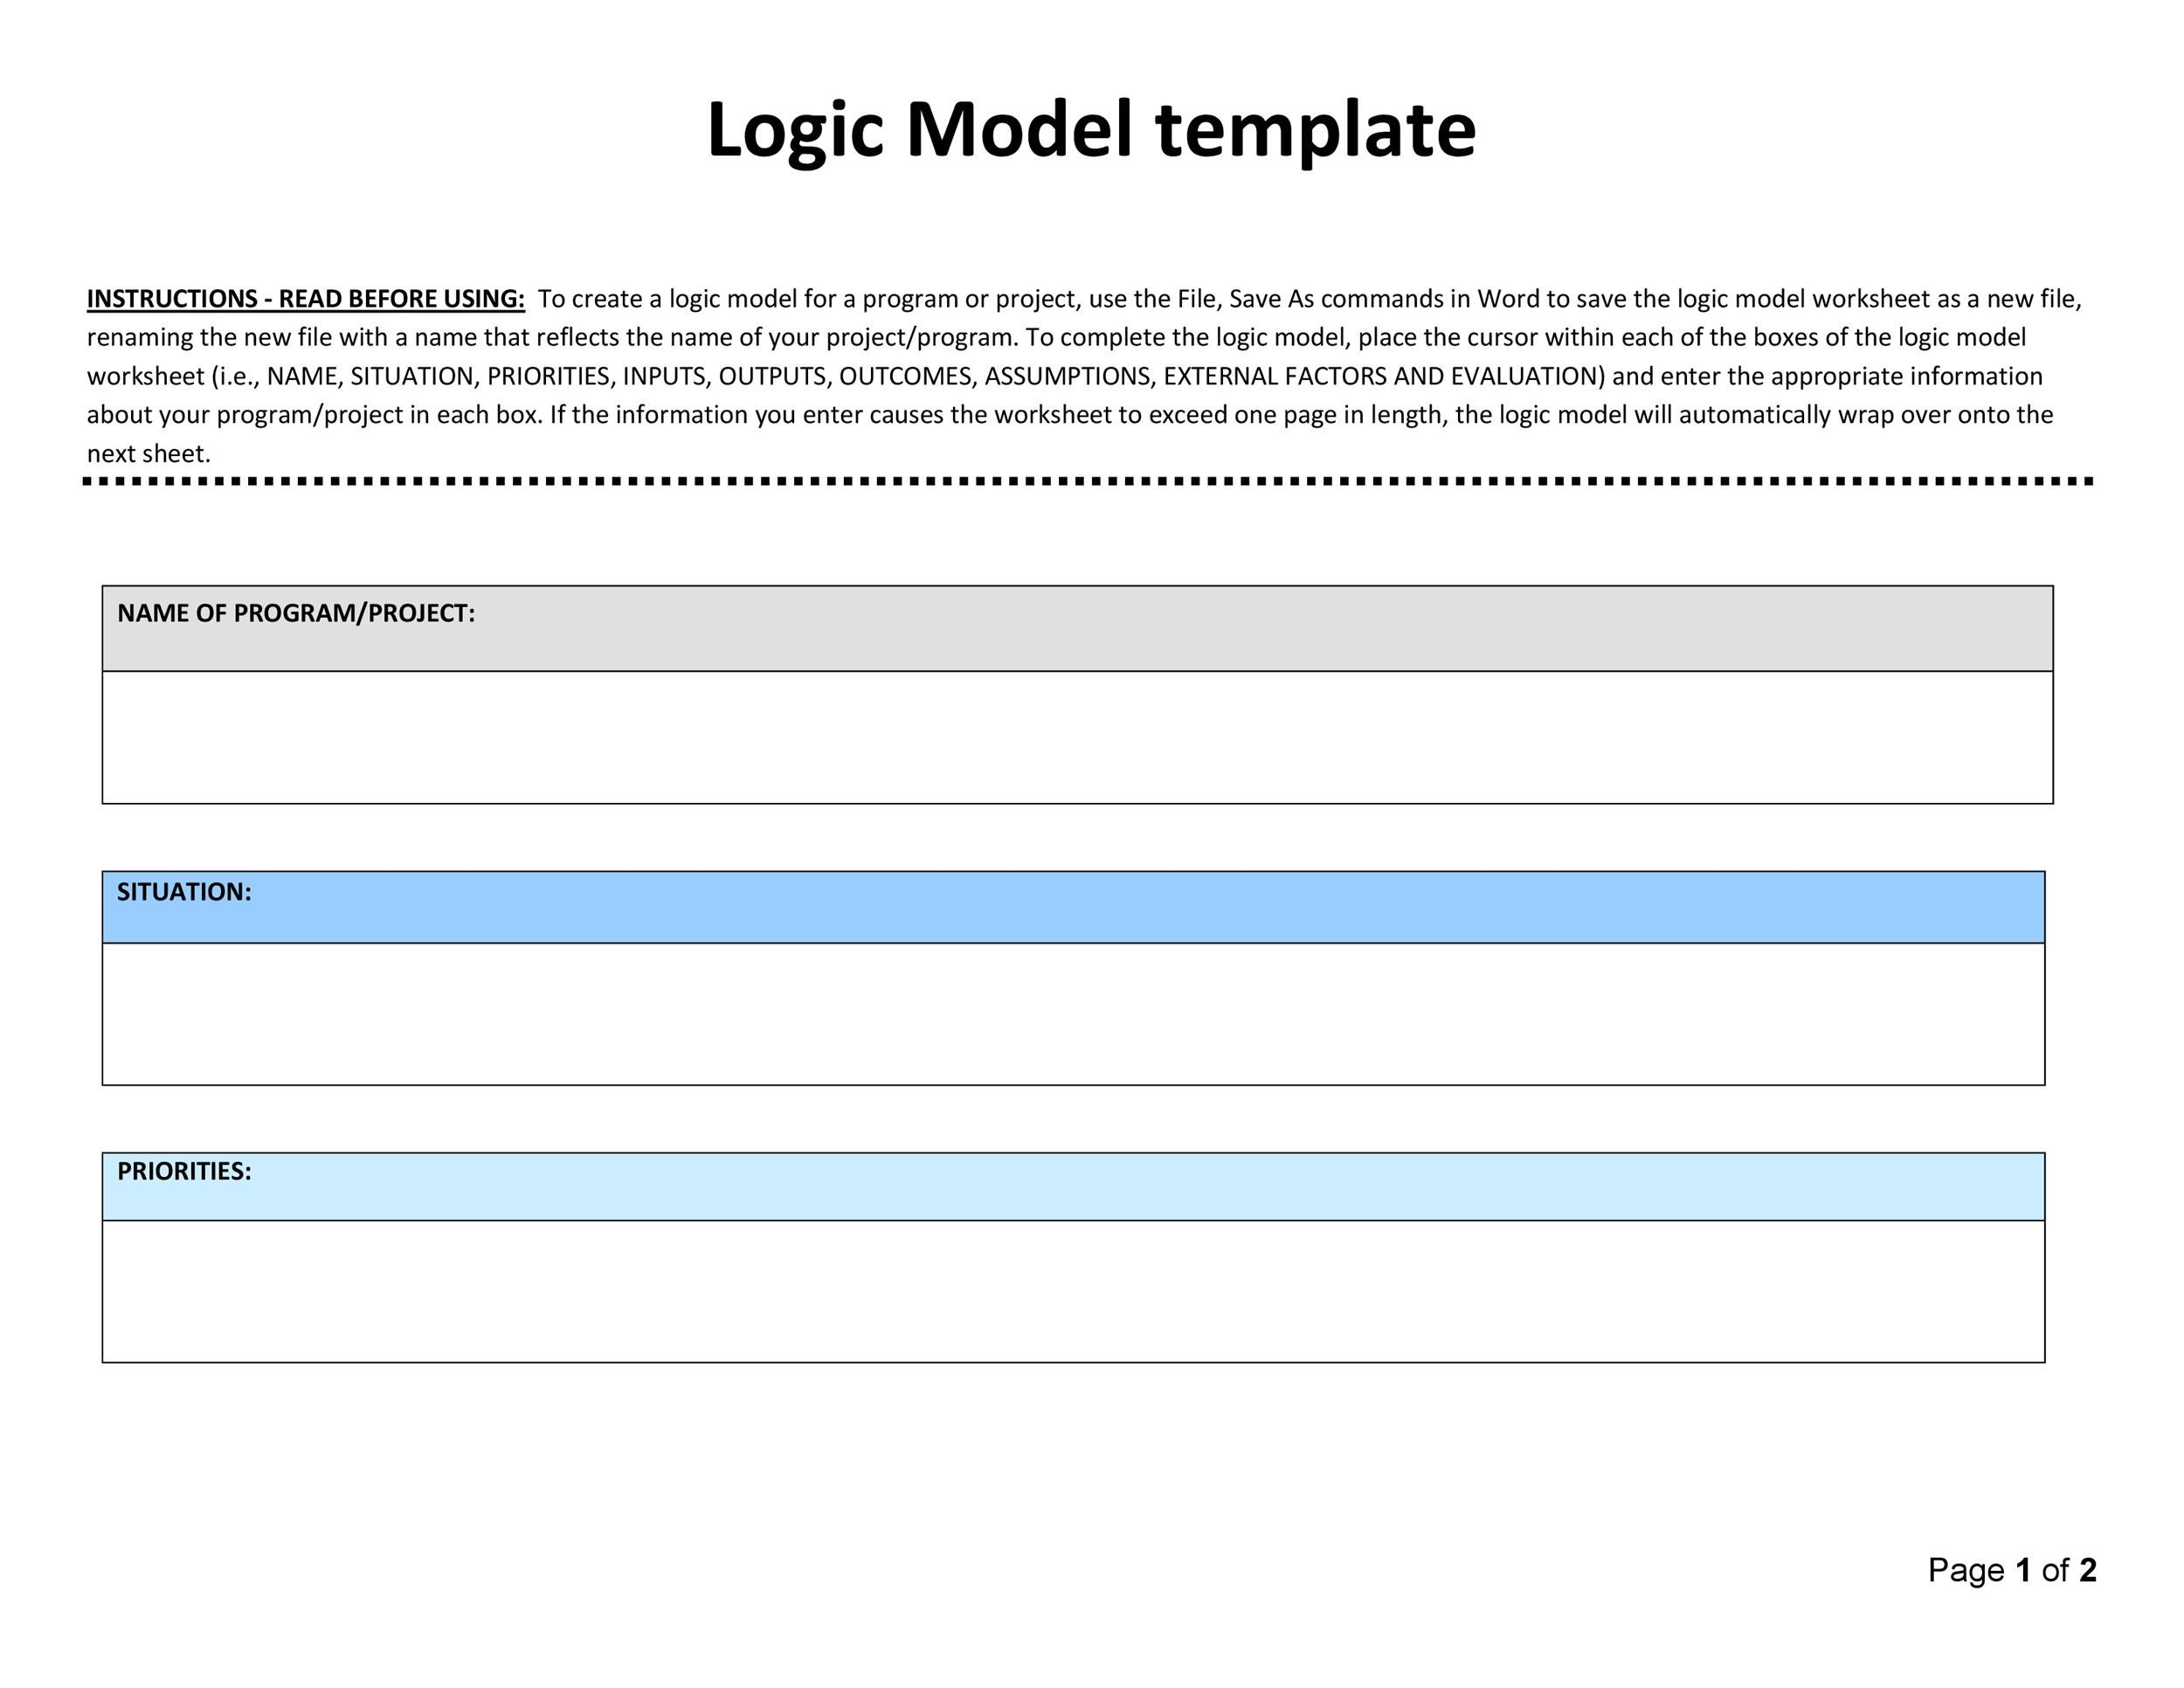 11 logic model templates word excel pdf templates for Logic model template microsoft word